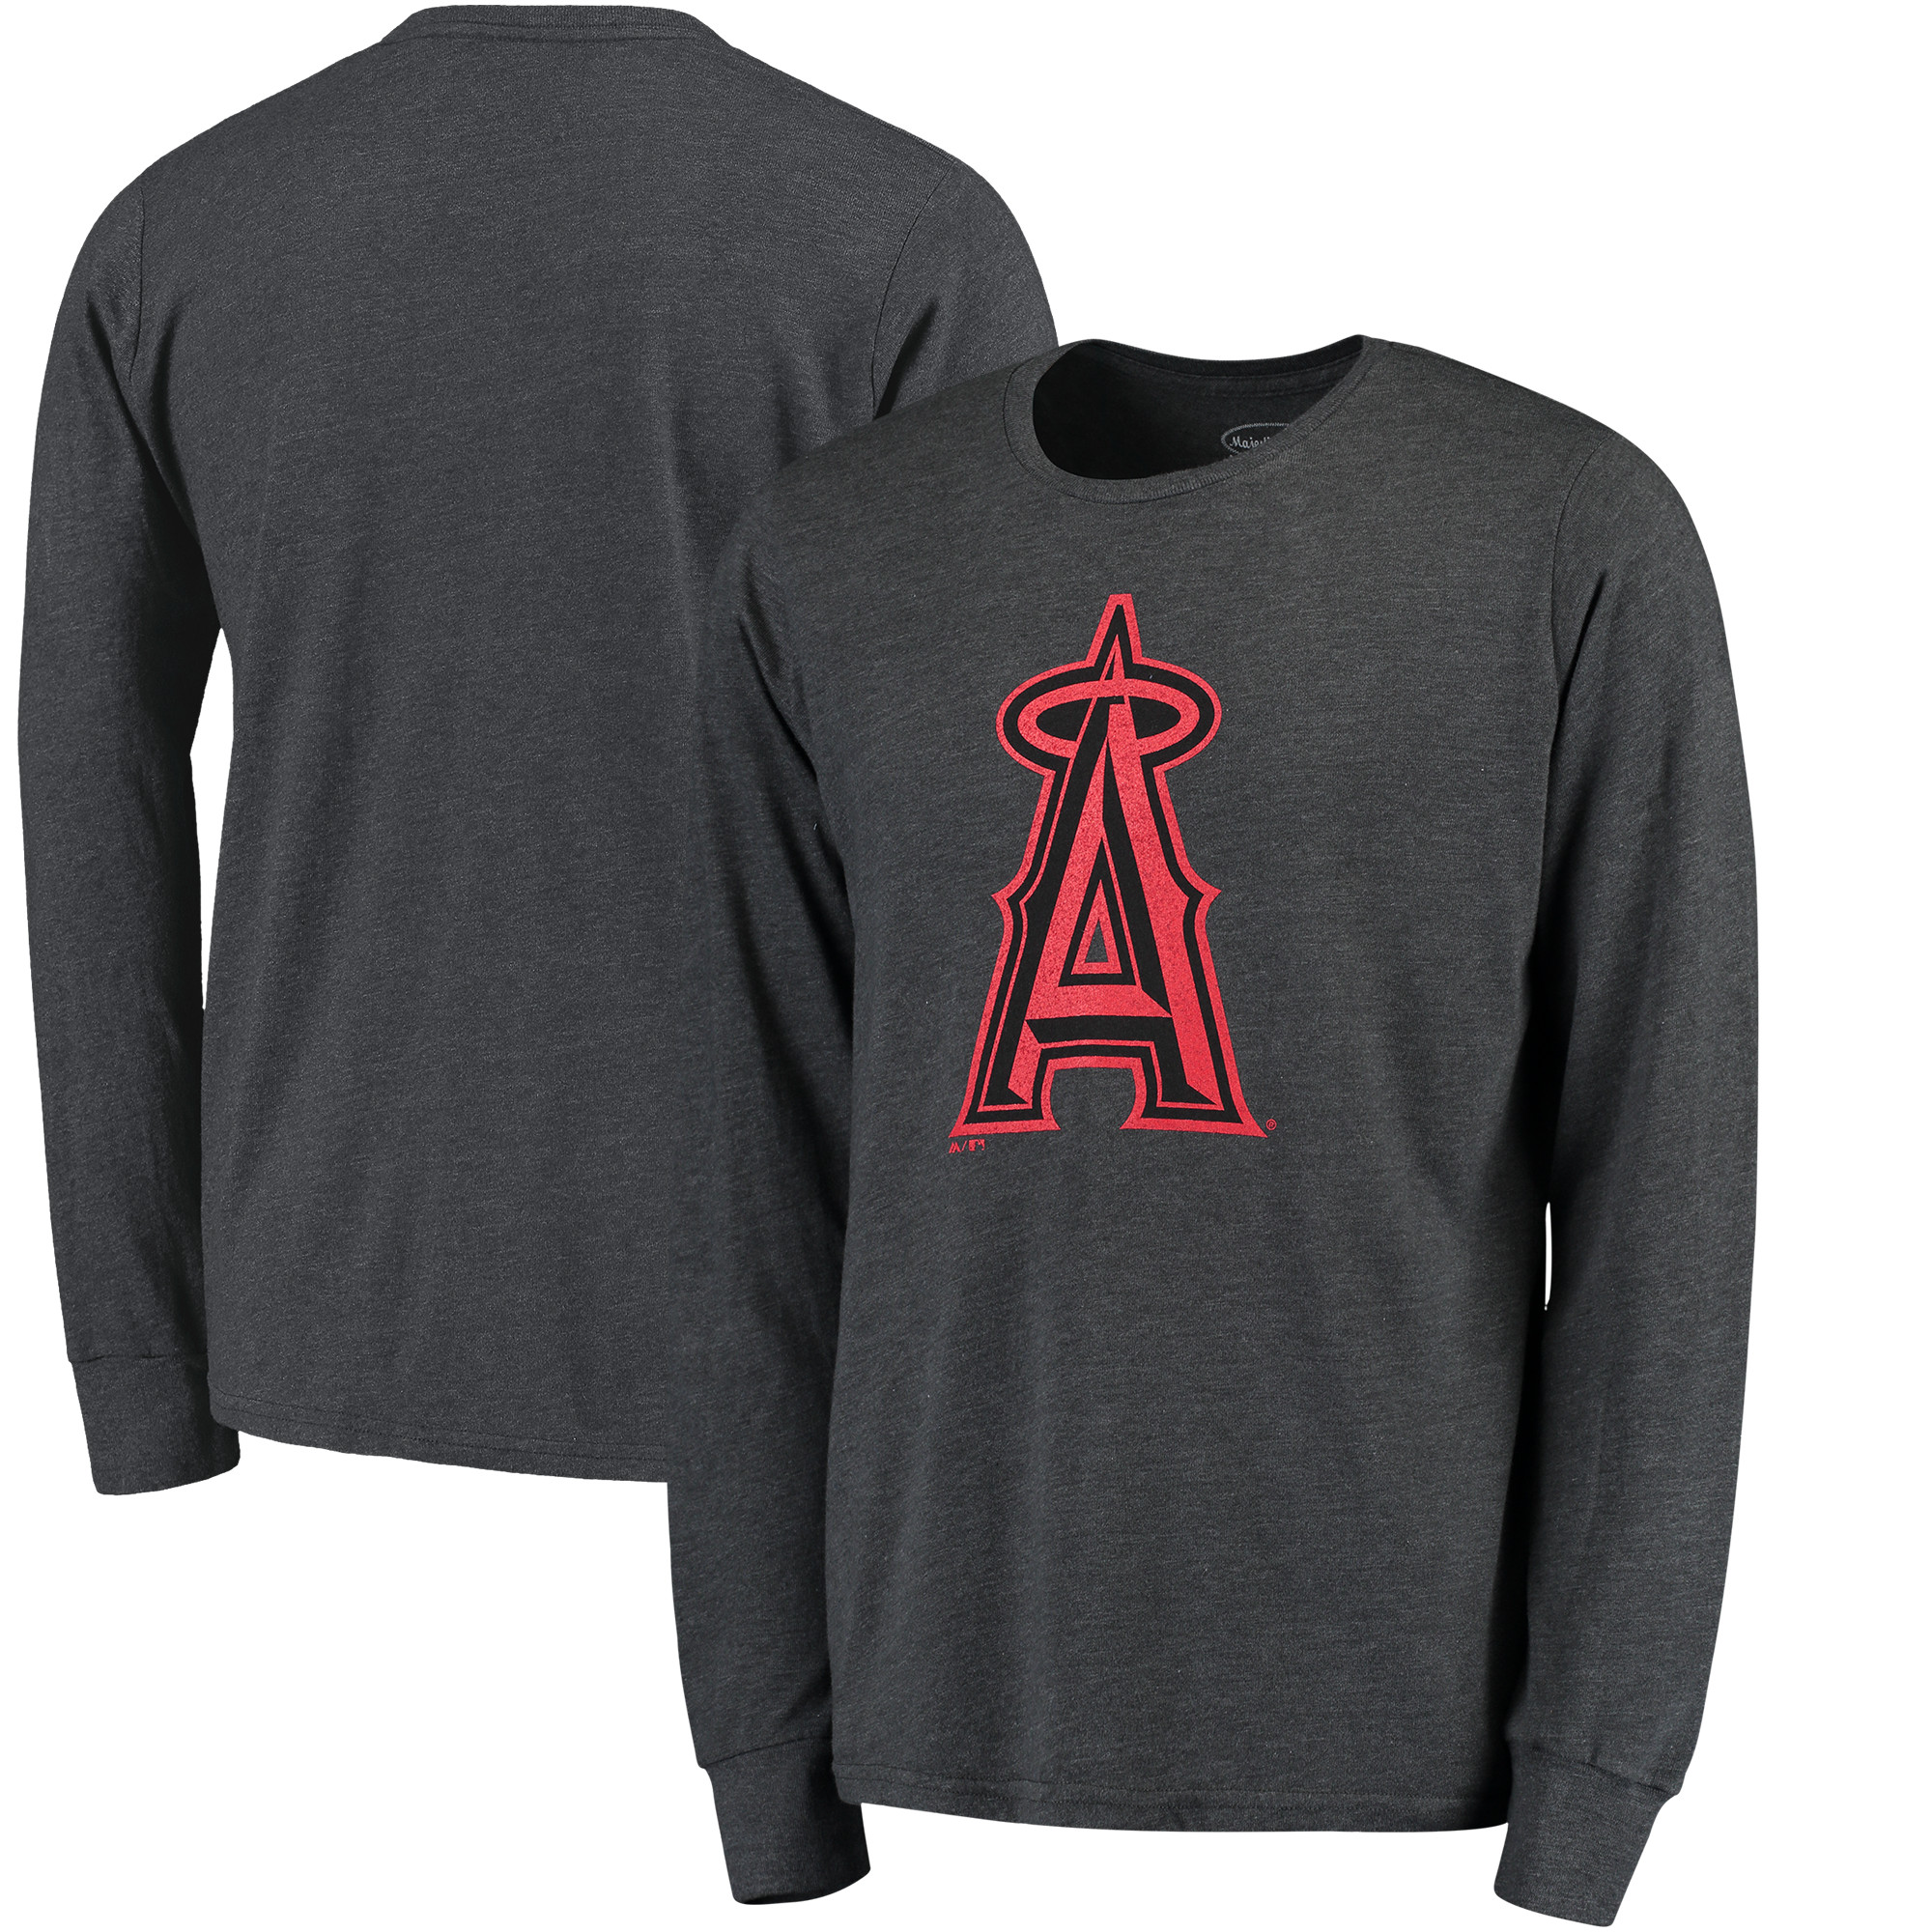 Los Angeles Angels Majestic Threads Tri-Blend Long Sleeve T-Shirt - Graphite